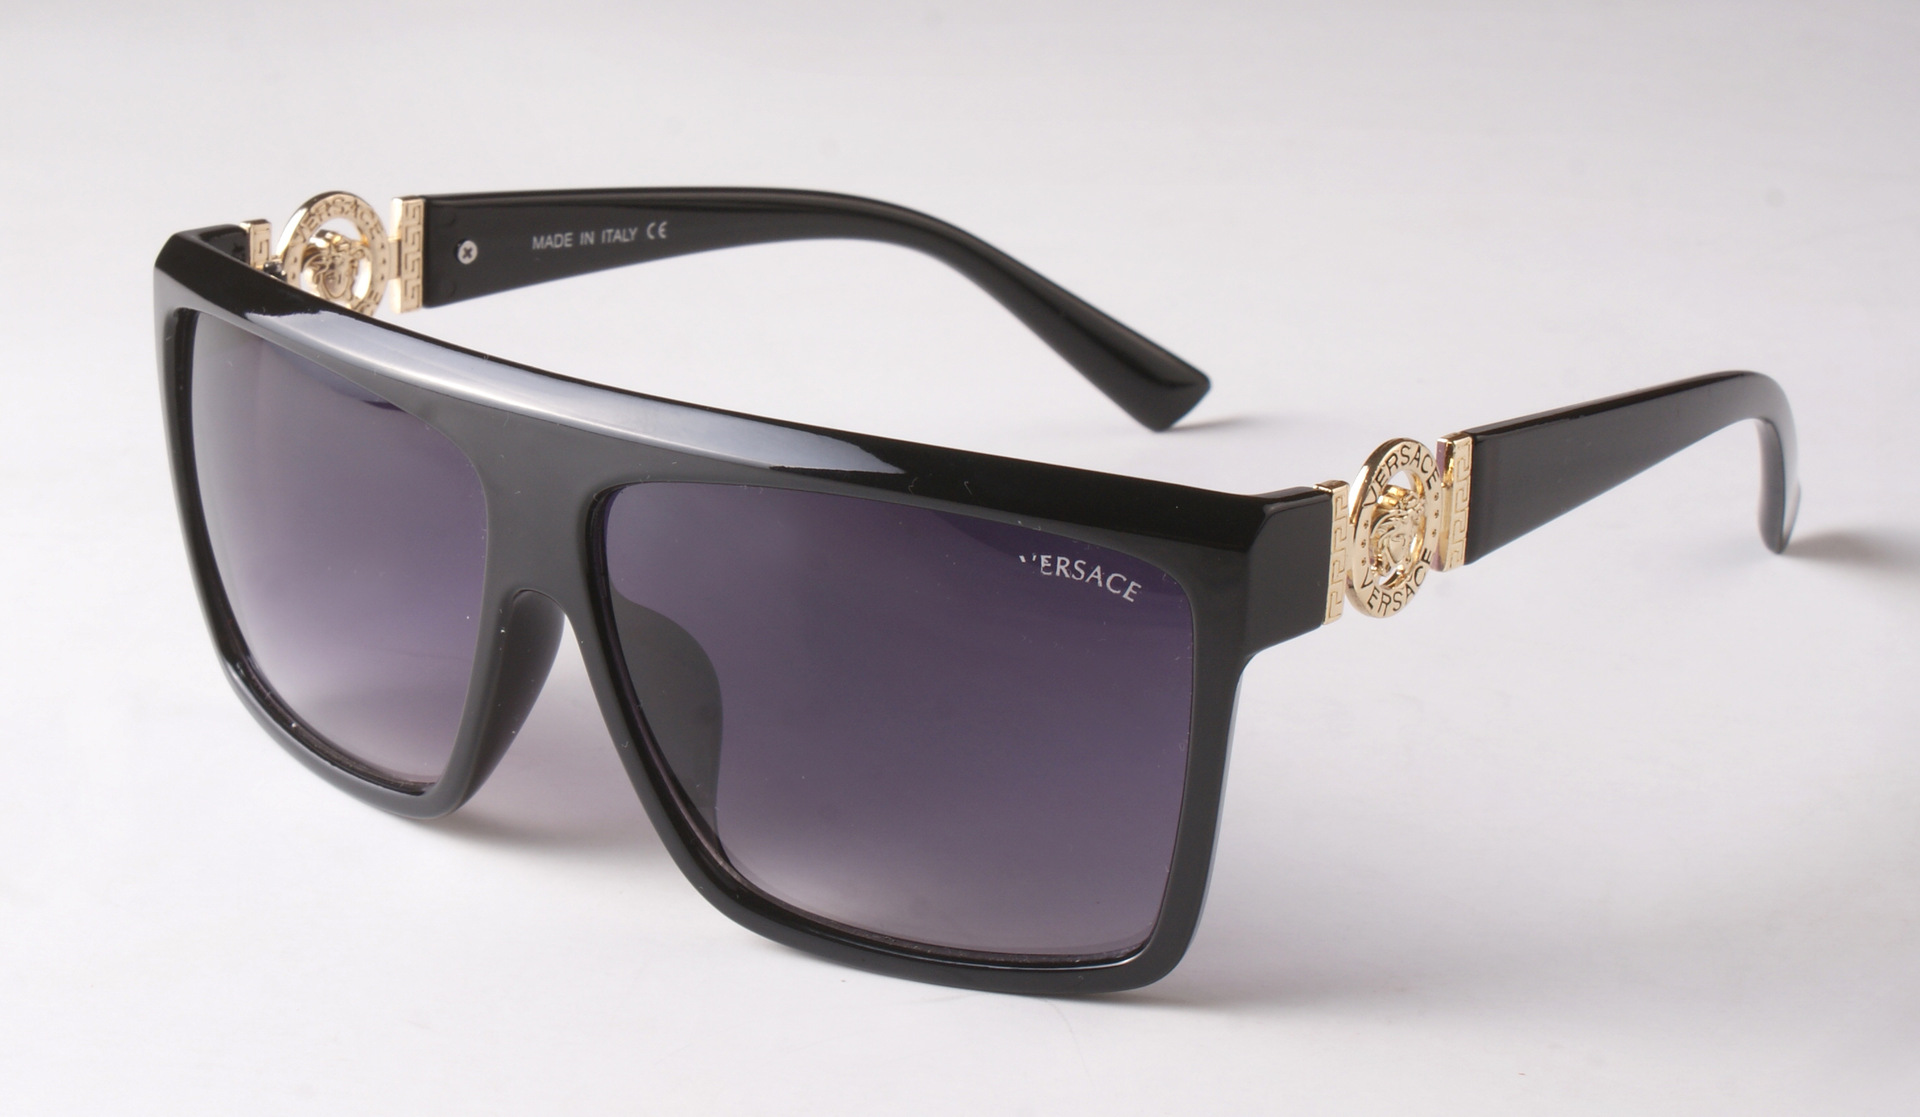 Frame glasses versace - Versace Sunglasses 5013 New Factory Direct Wholesale Sunglasses For Men And Women The Same Paragraph Large